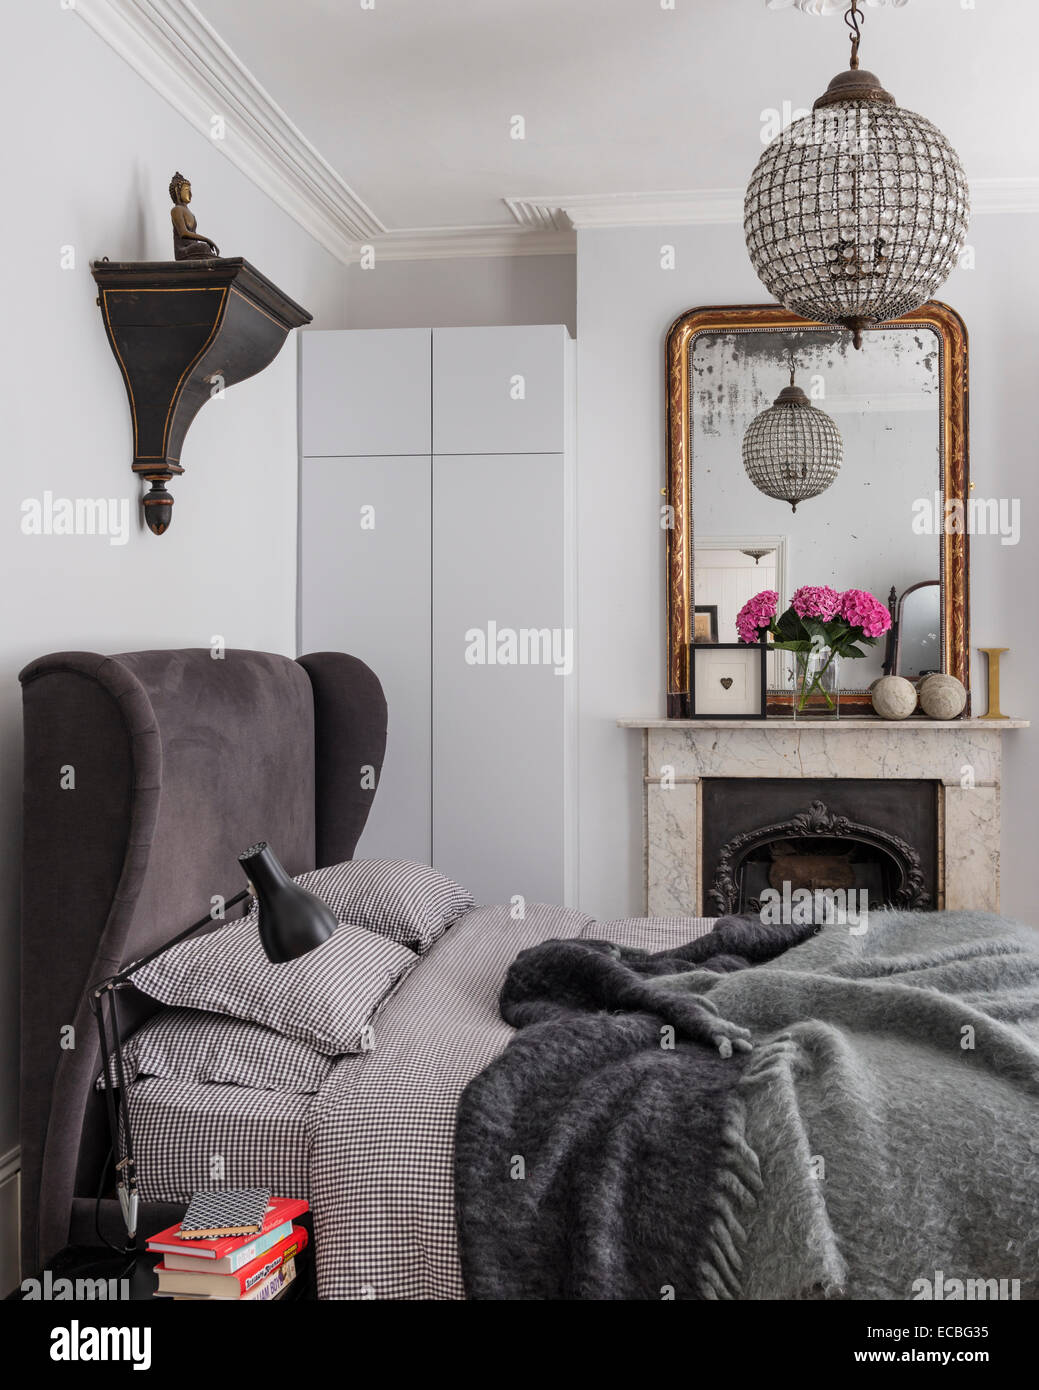 Luxury upholstered bed from sofa.com in bedroom with original fireplace, inbuilt storage and guilt framed mirror. - Stock Image